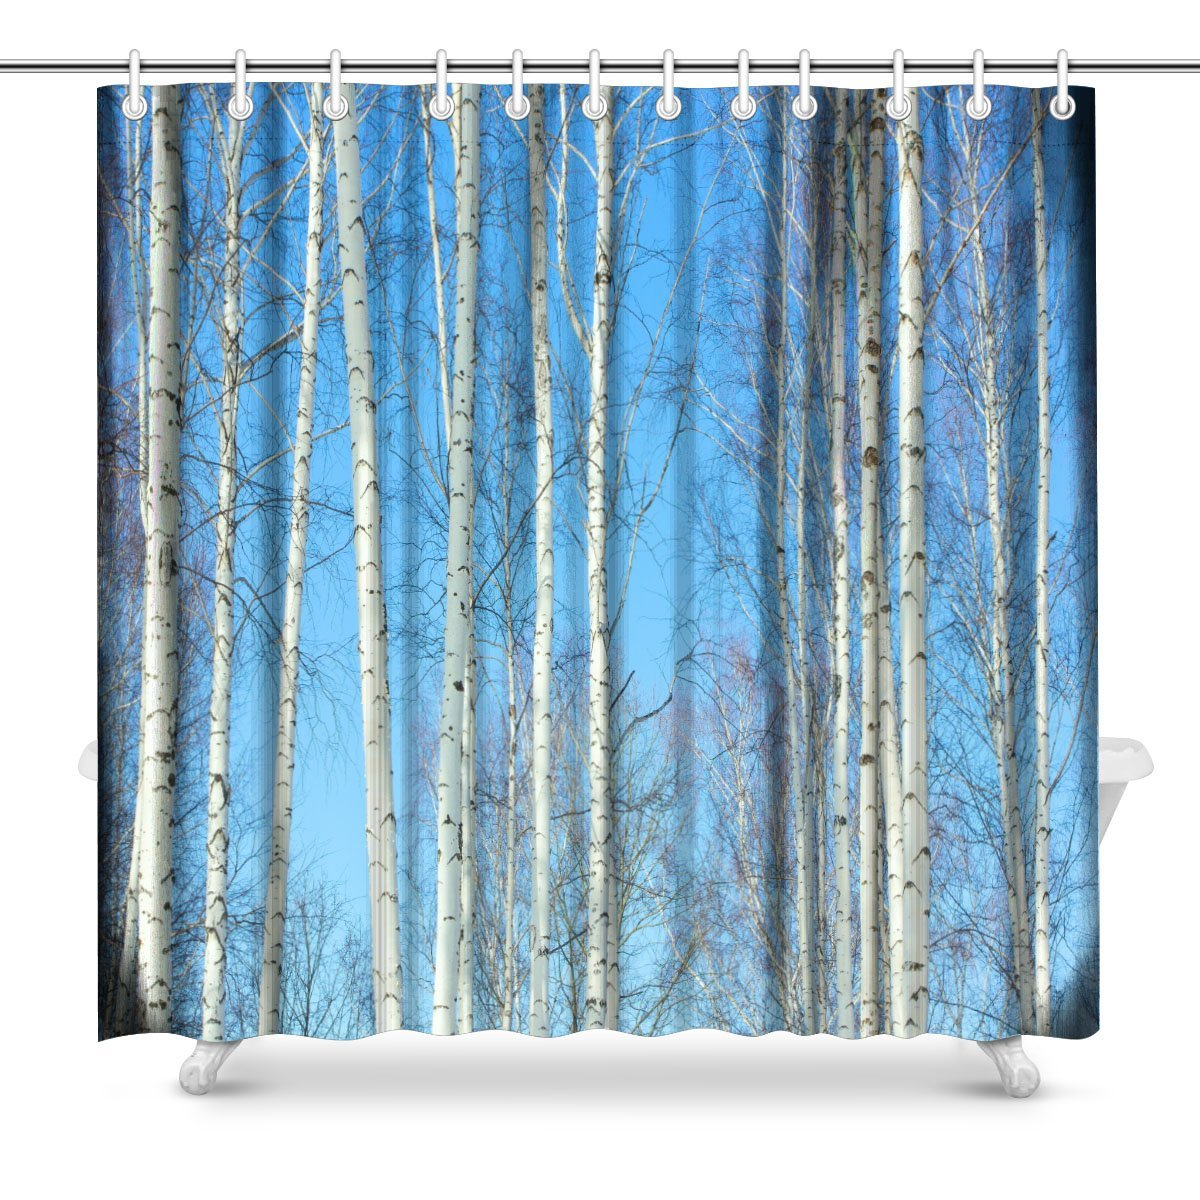 the Slender Trunks of Birch Trees on a of the Blue Sky of Spring Polyester Fabric Bathroom Shower Curtain Set with Hooks,